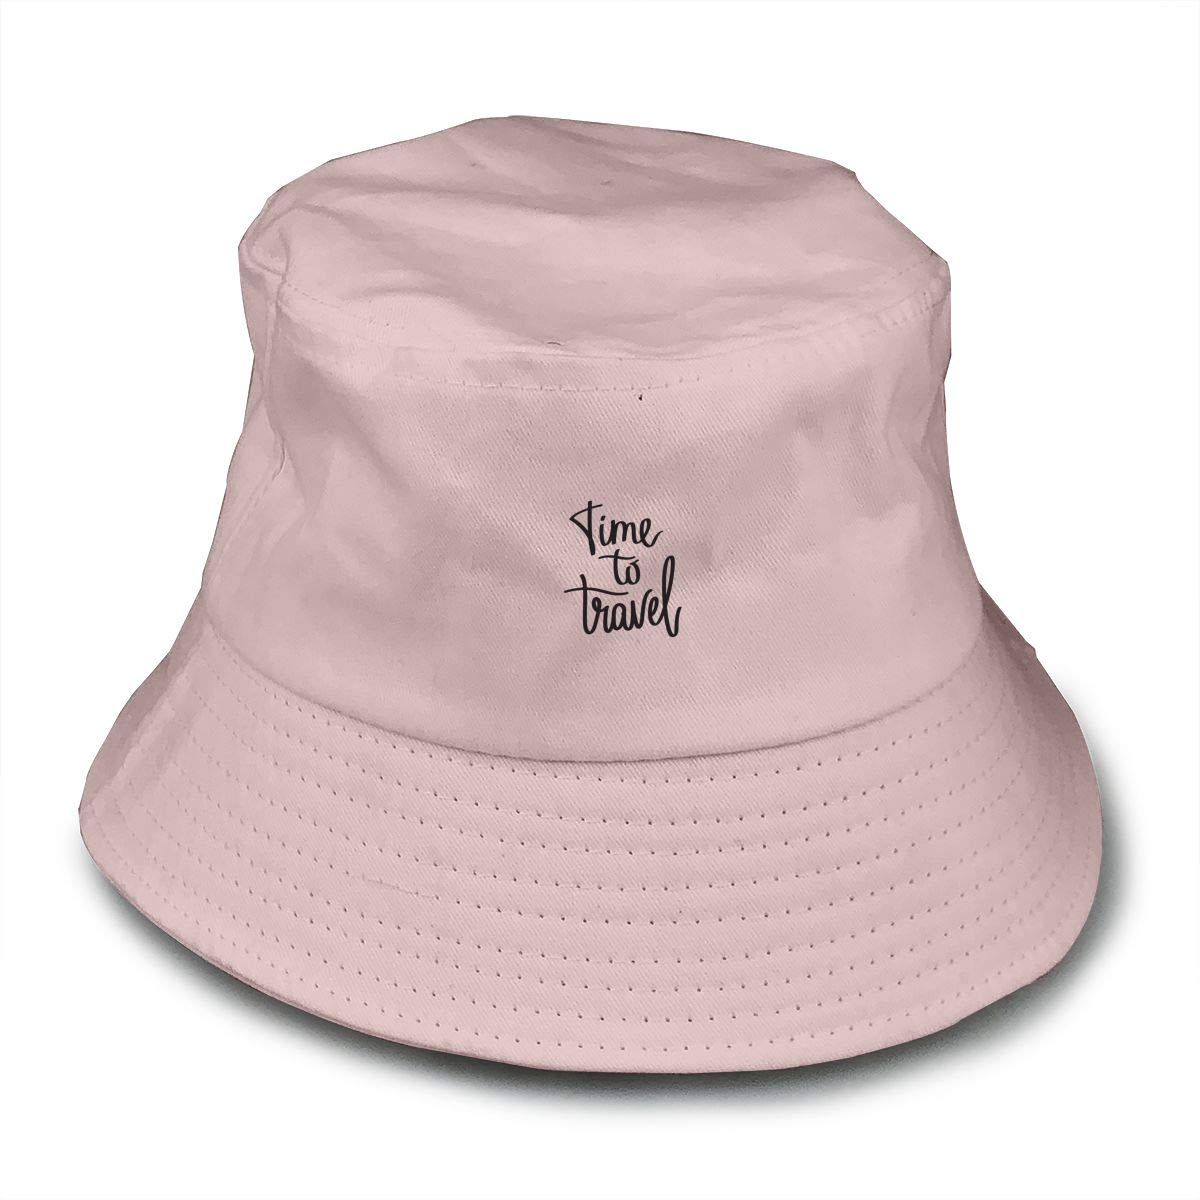 NDFGR Time to Travel Unisex Cotton Packable Black Travel Bucket Hat Fishing Cap